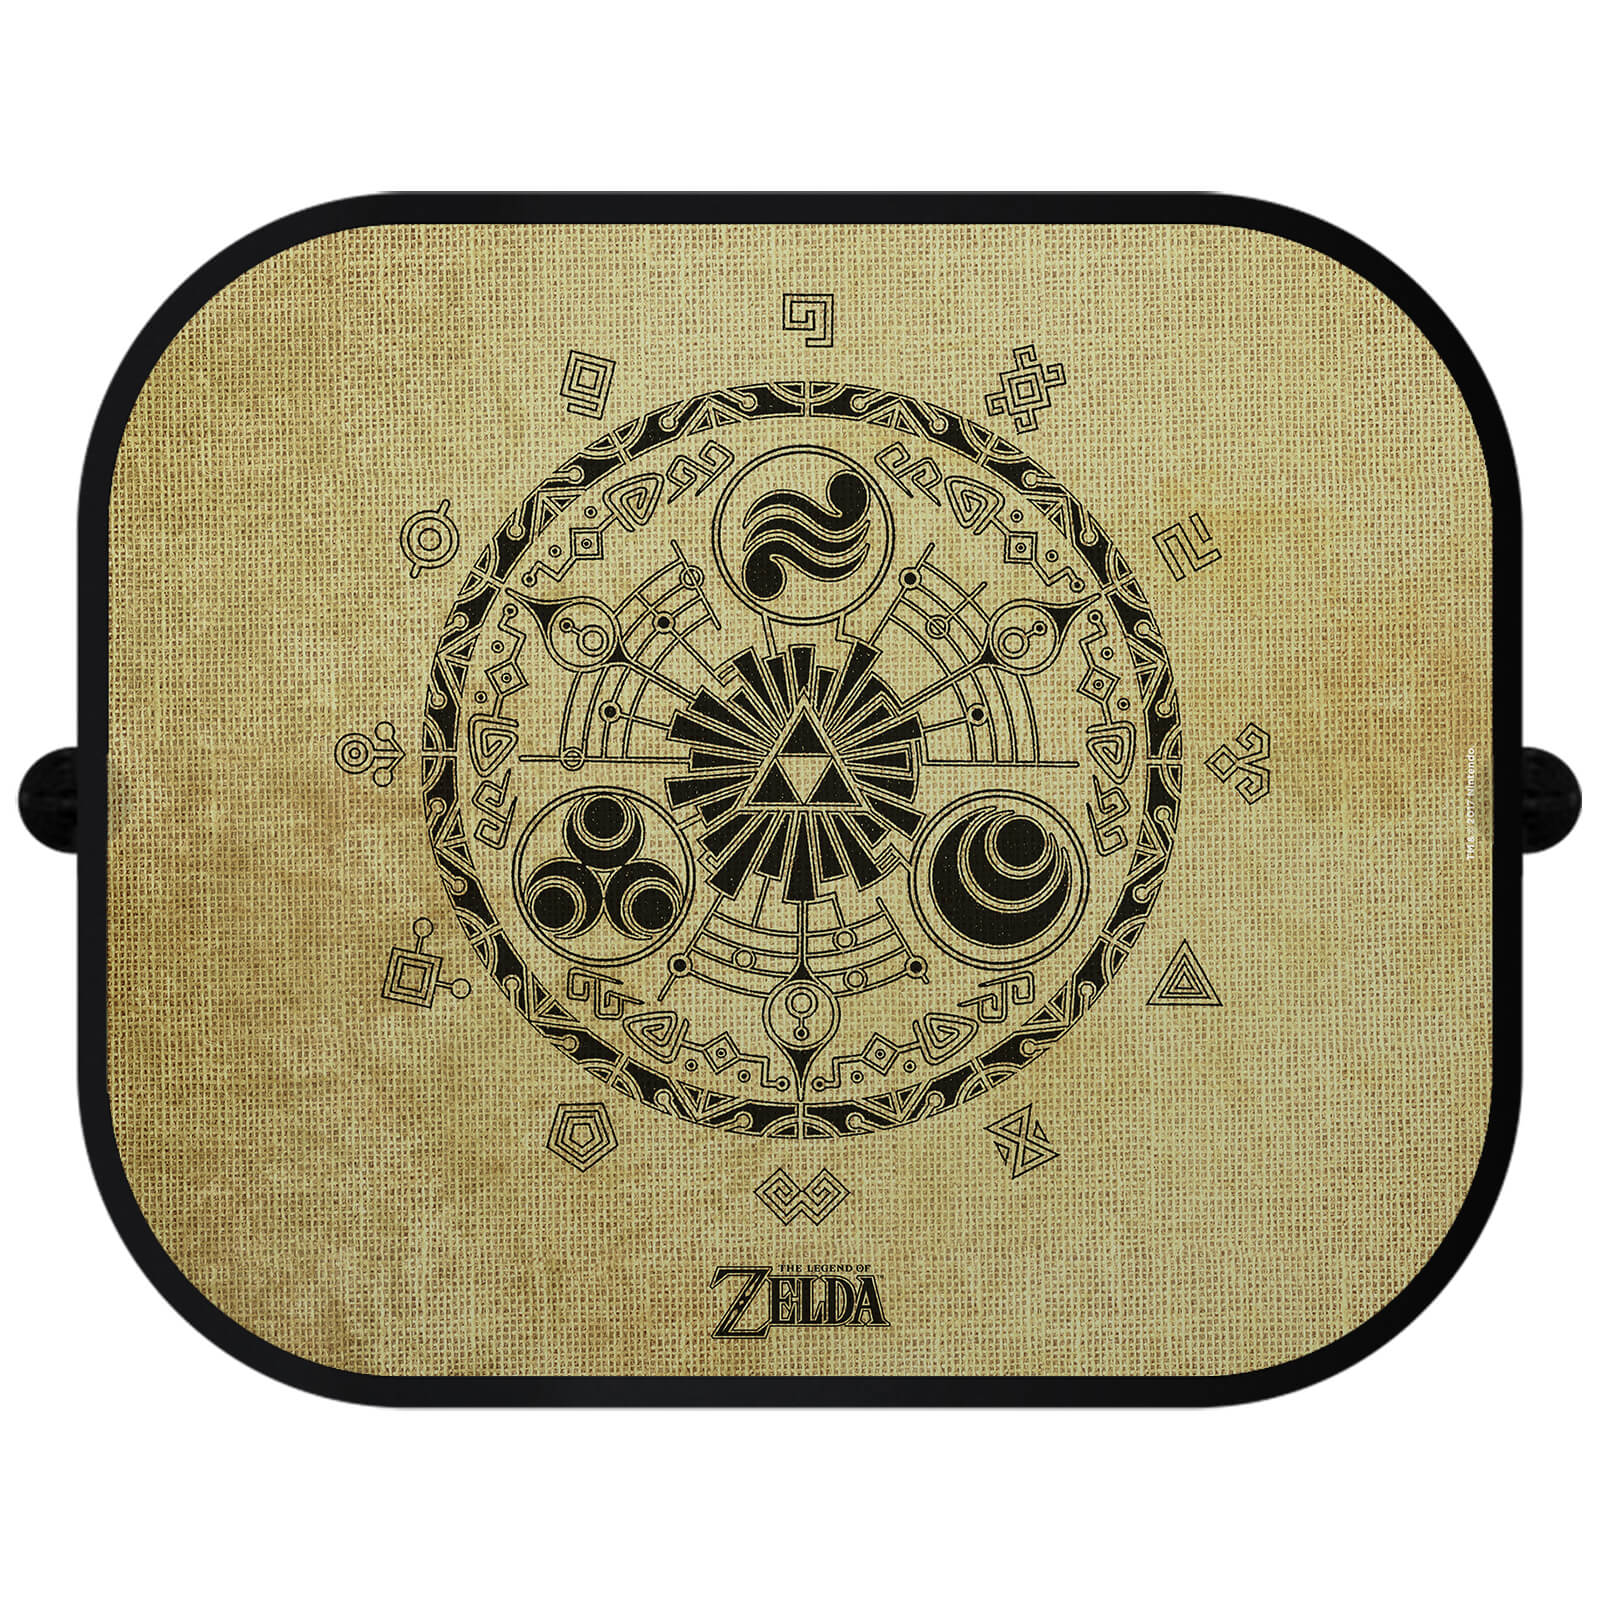 Nintendo The Legend Of Zelda Sunshades (pack of 2)